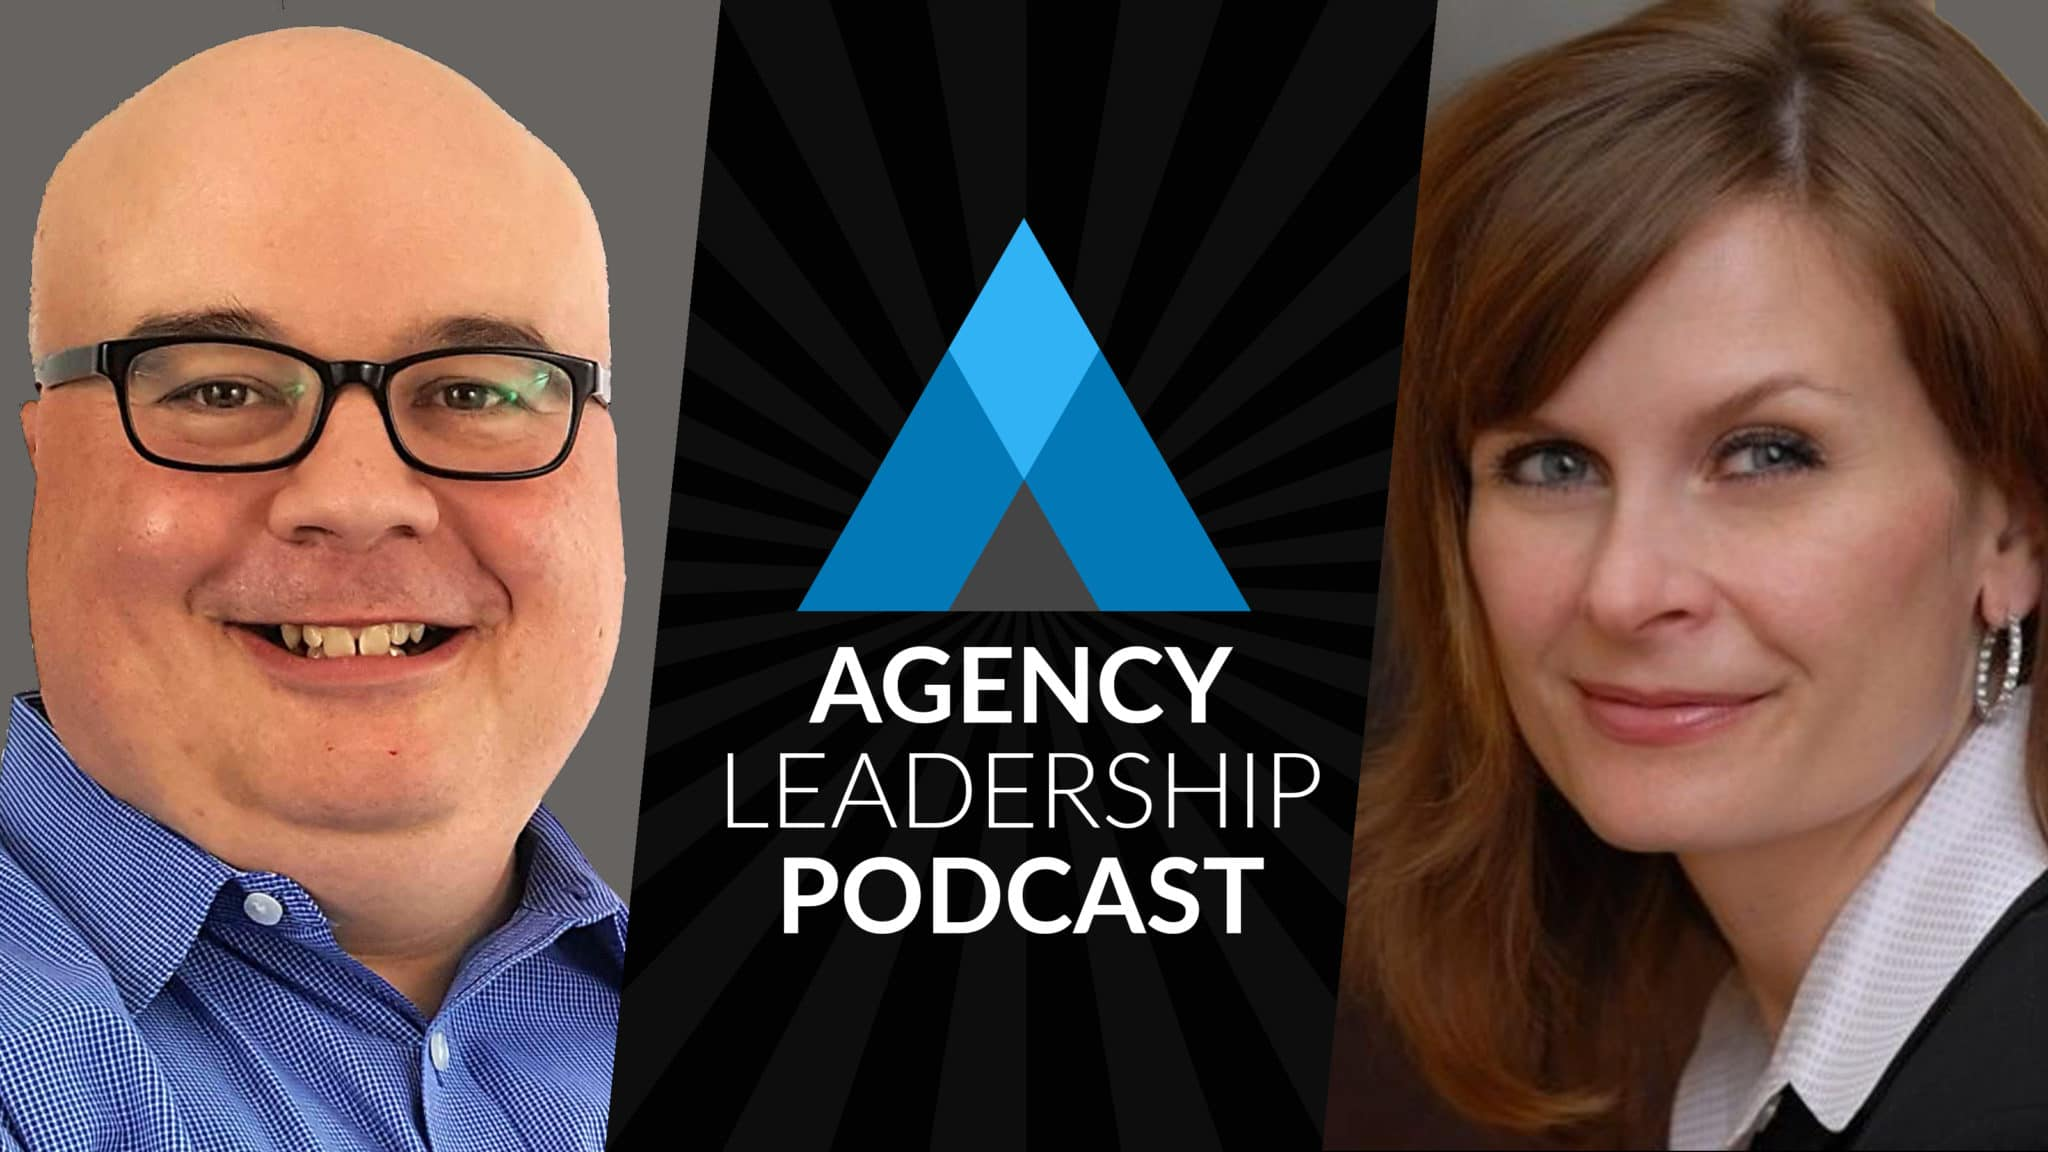 Agency Leadership Podcast with Chip Griffin and Gini Dietrich